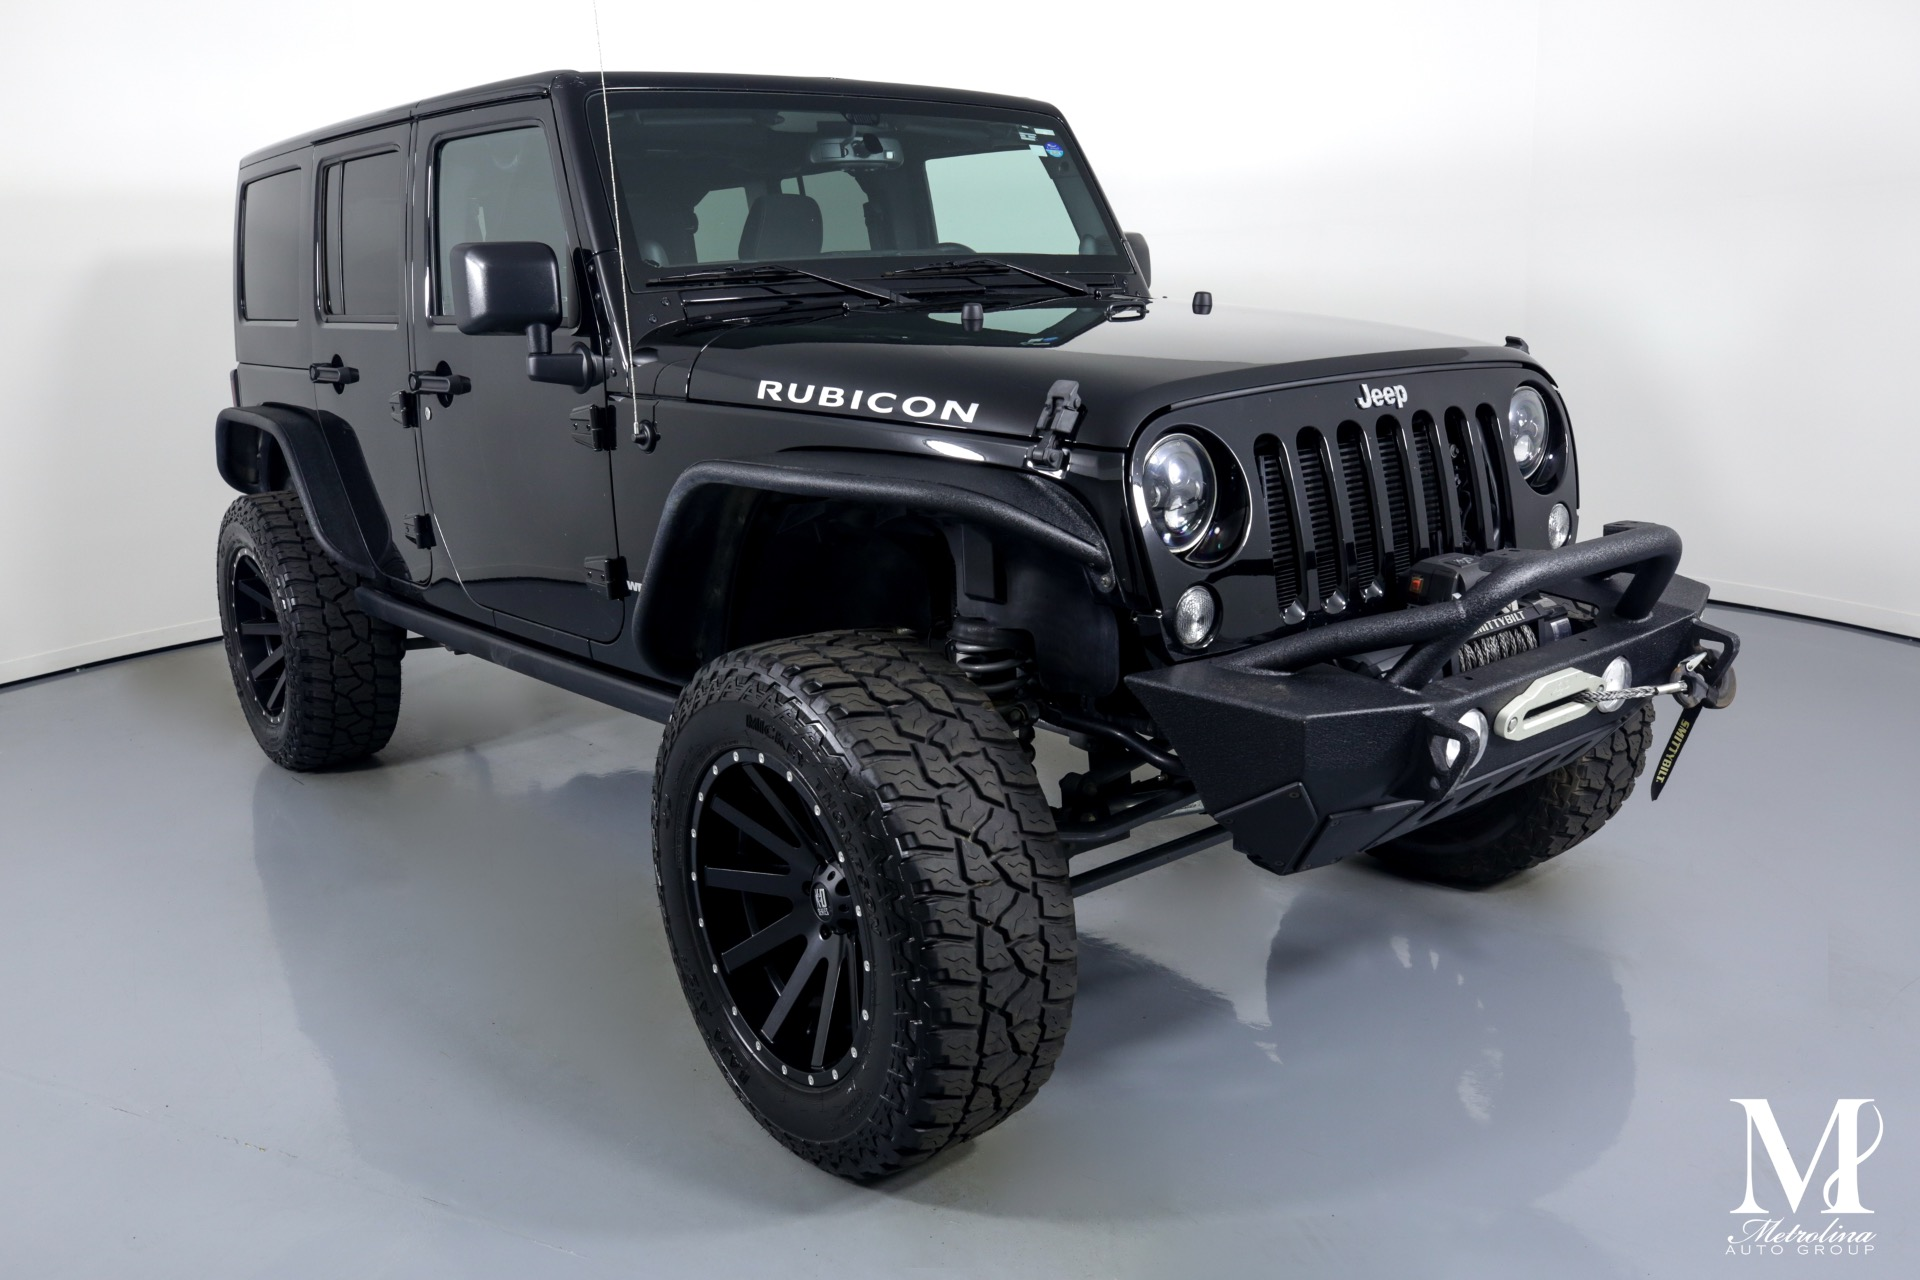 Used 2014 Jeep Wrangler Unlimited Rubicon for sale $44,996 at Metrolina Auto Group in Charlotte NC 28217 - 2